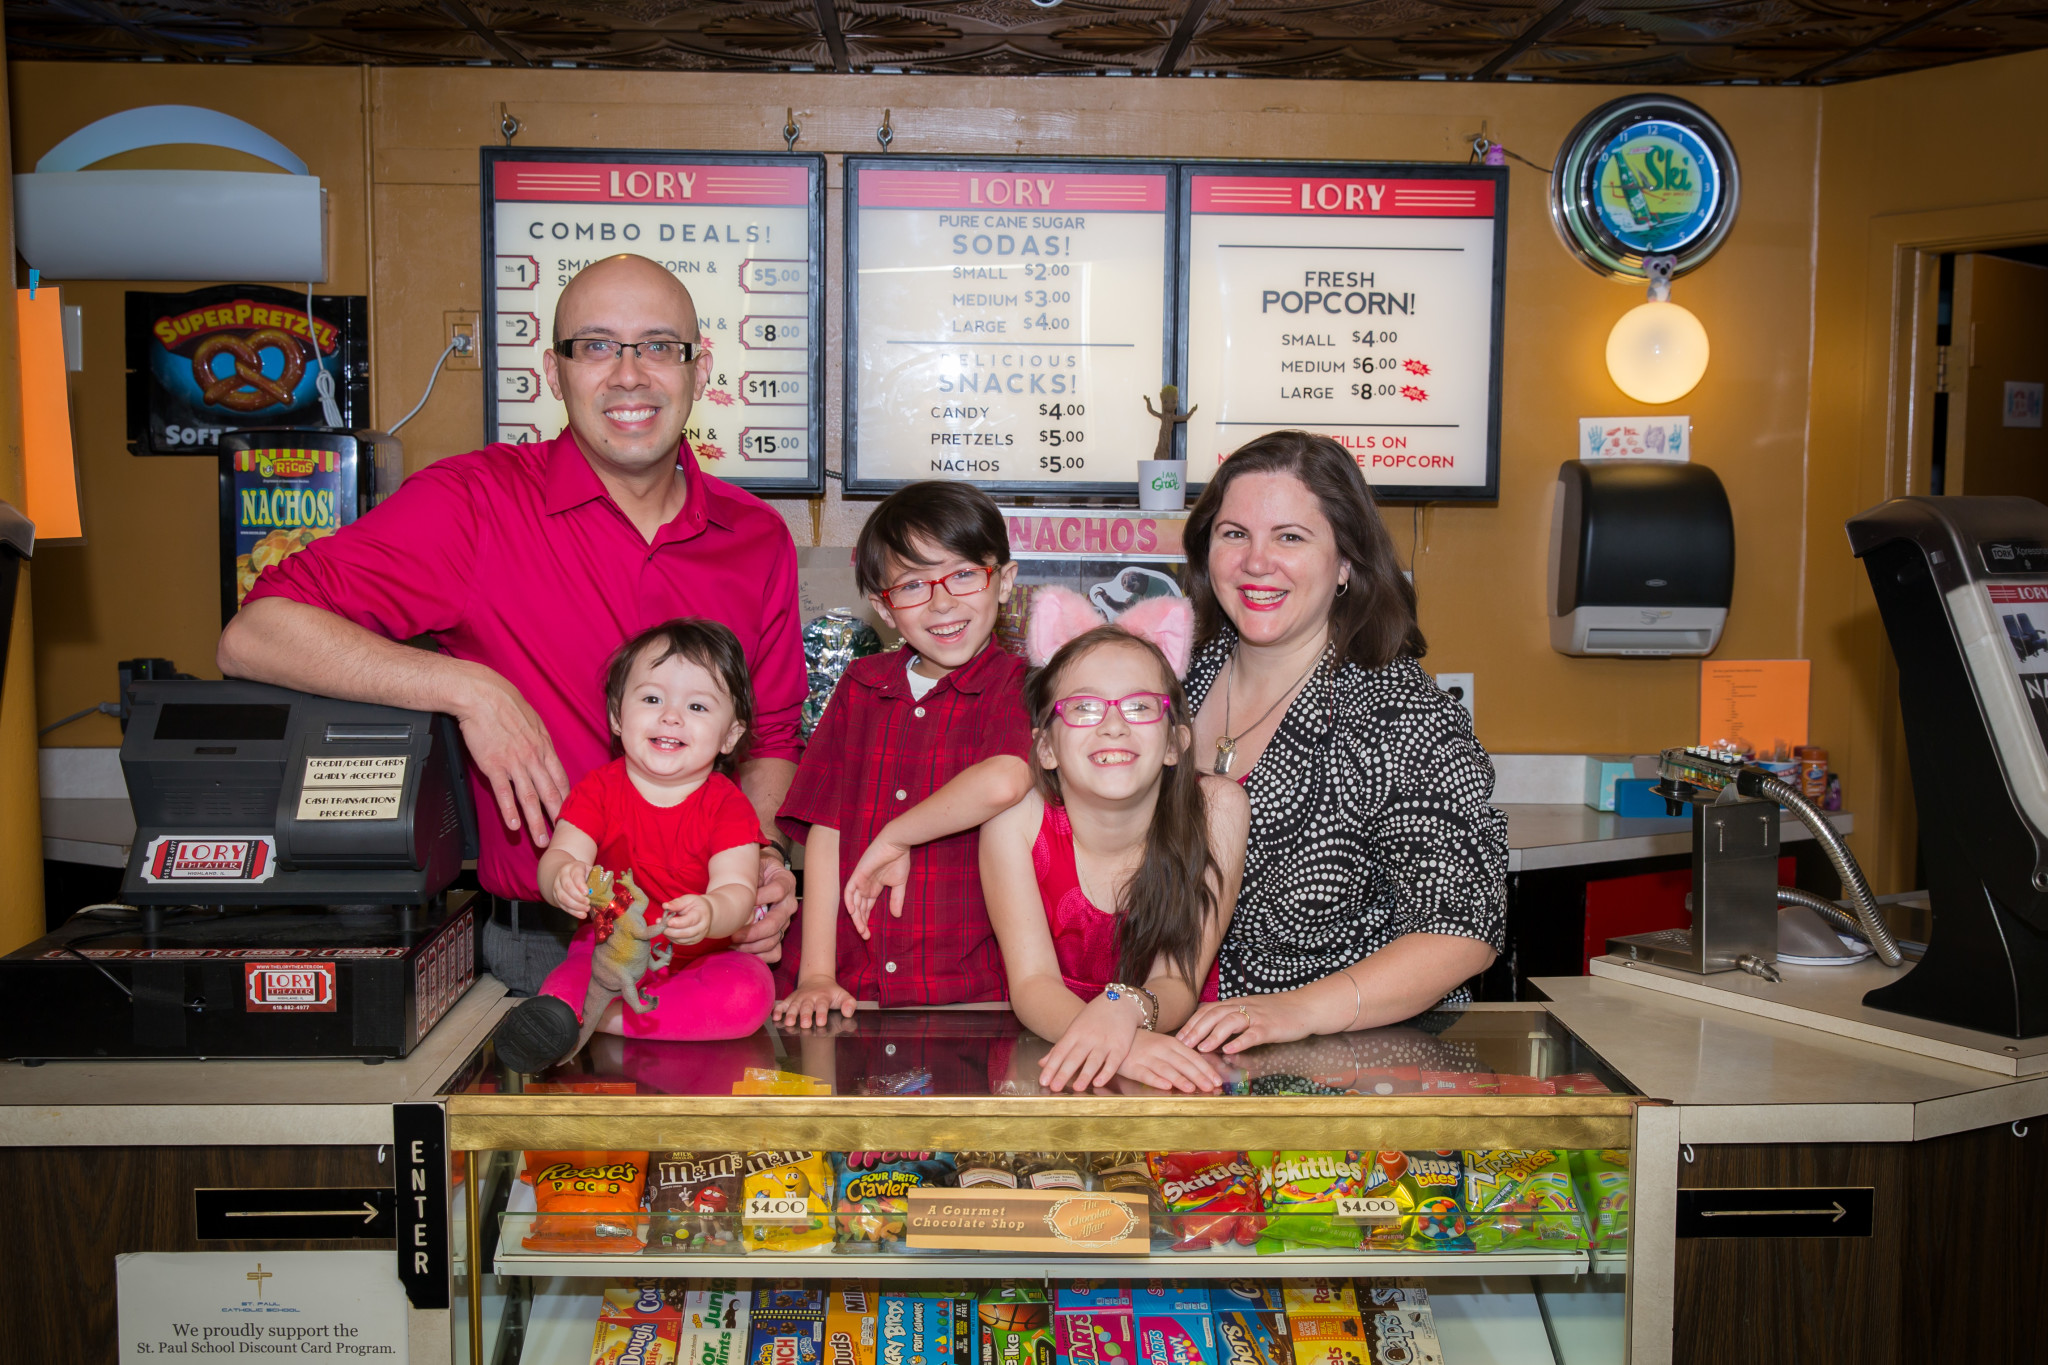 The McLaughlin family at The Lory Theater